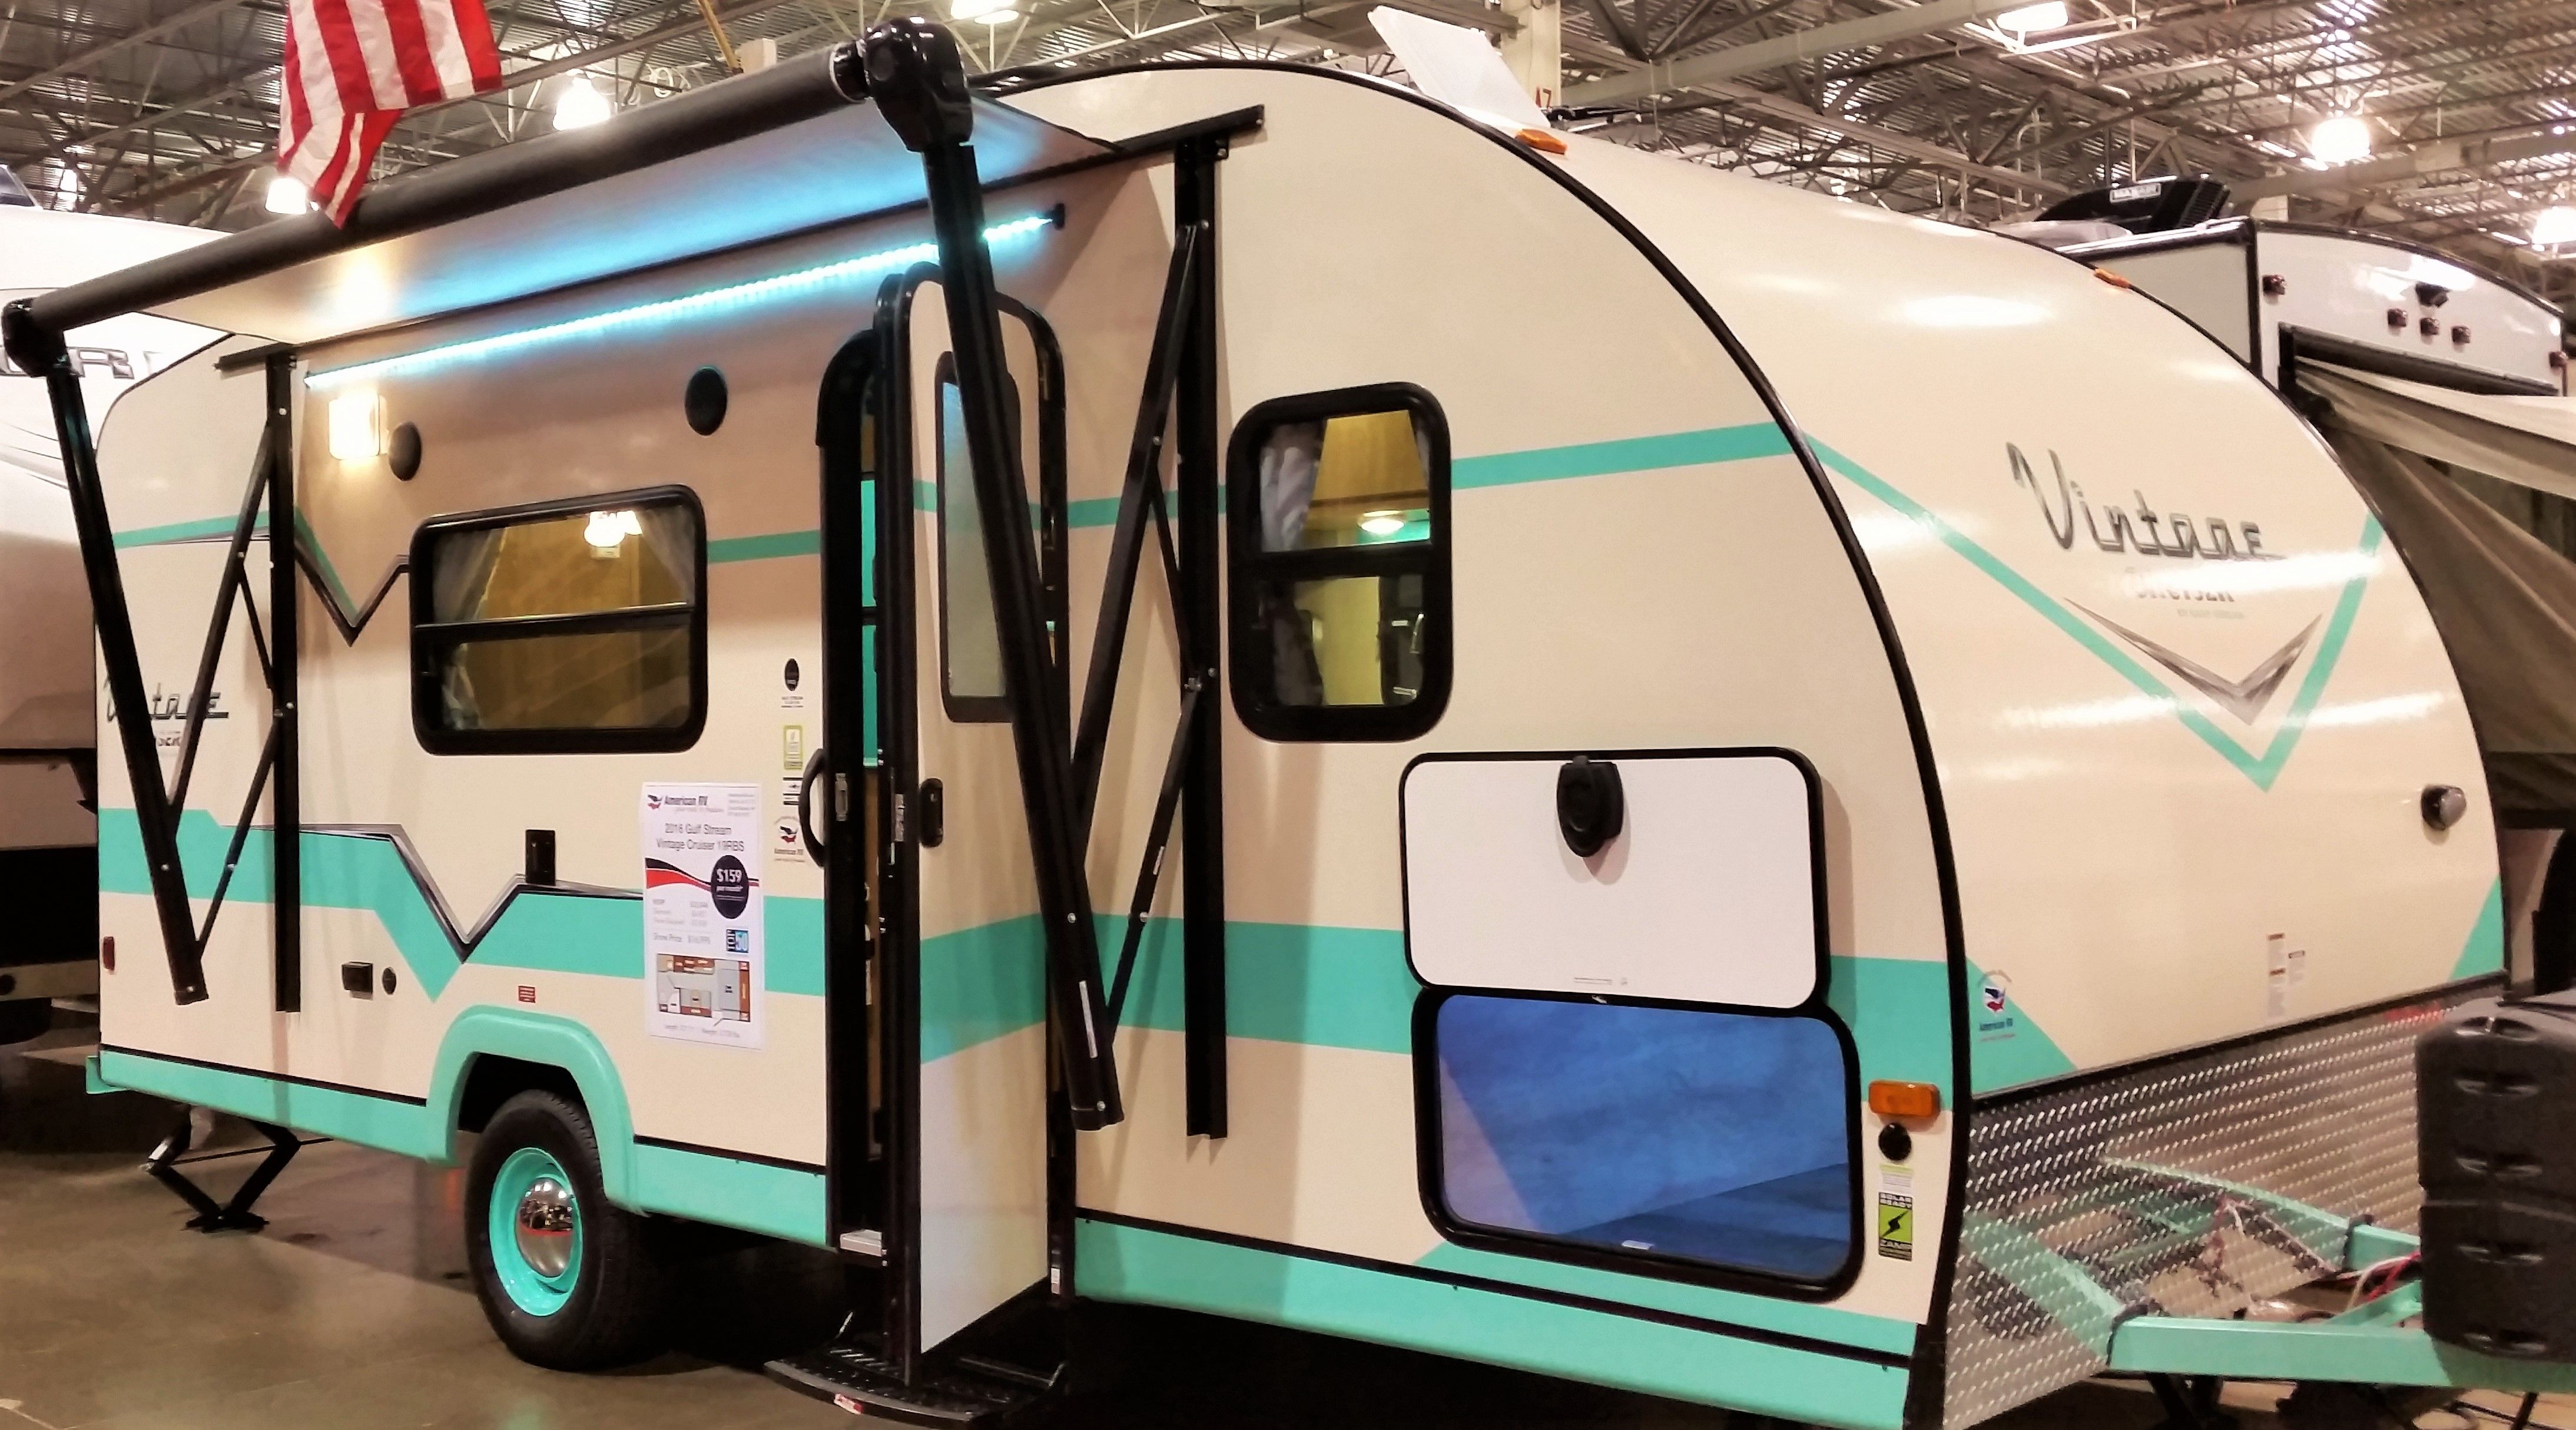 See This Adorable 2016 Gulf Stream Vintage Cruiser At The 2015